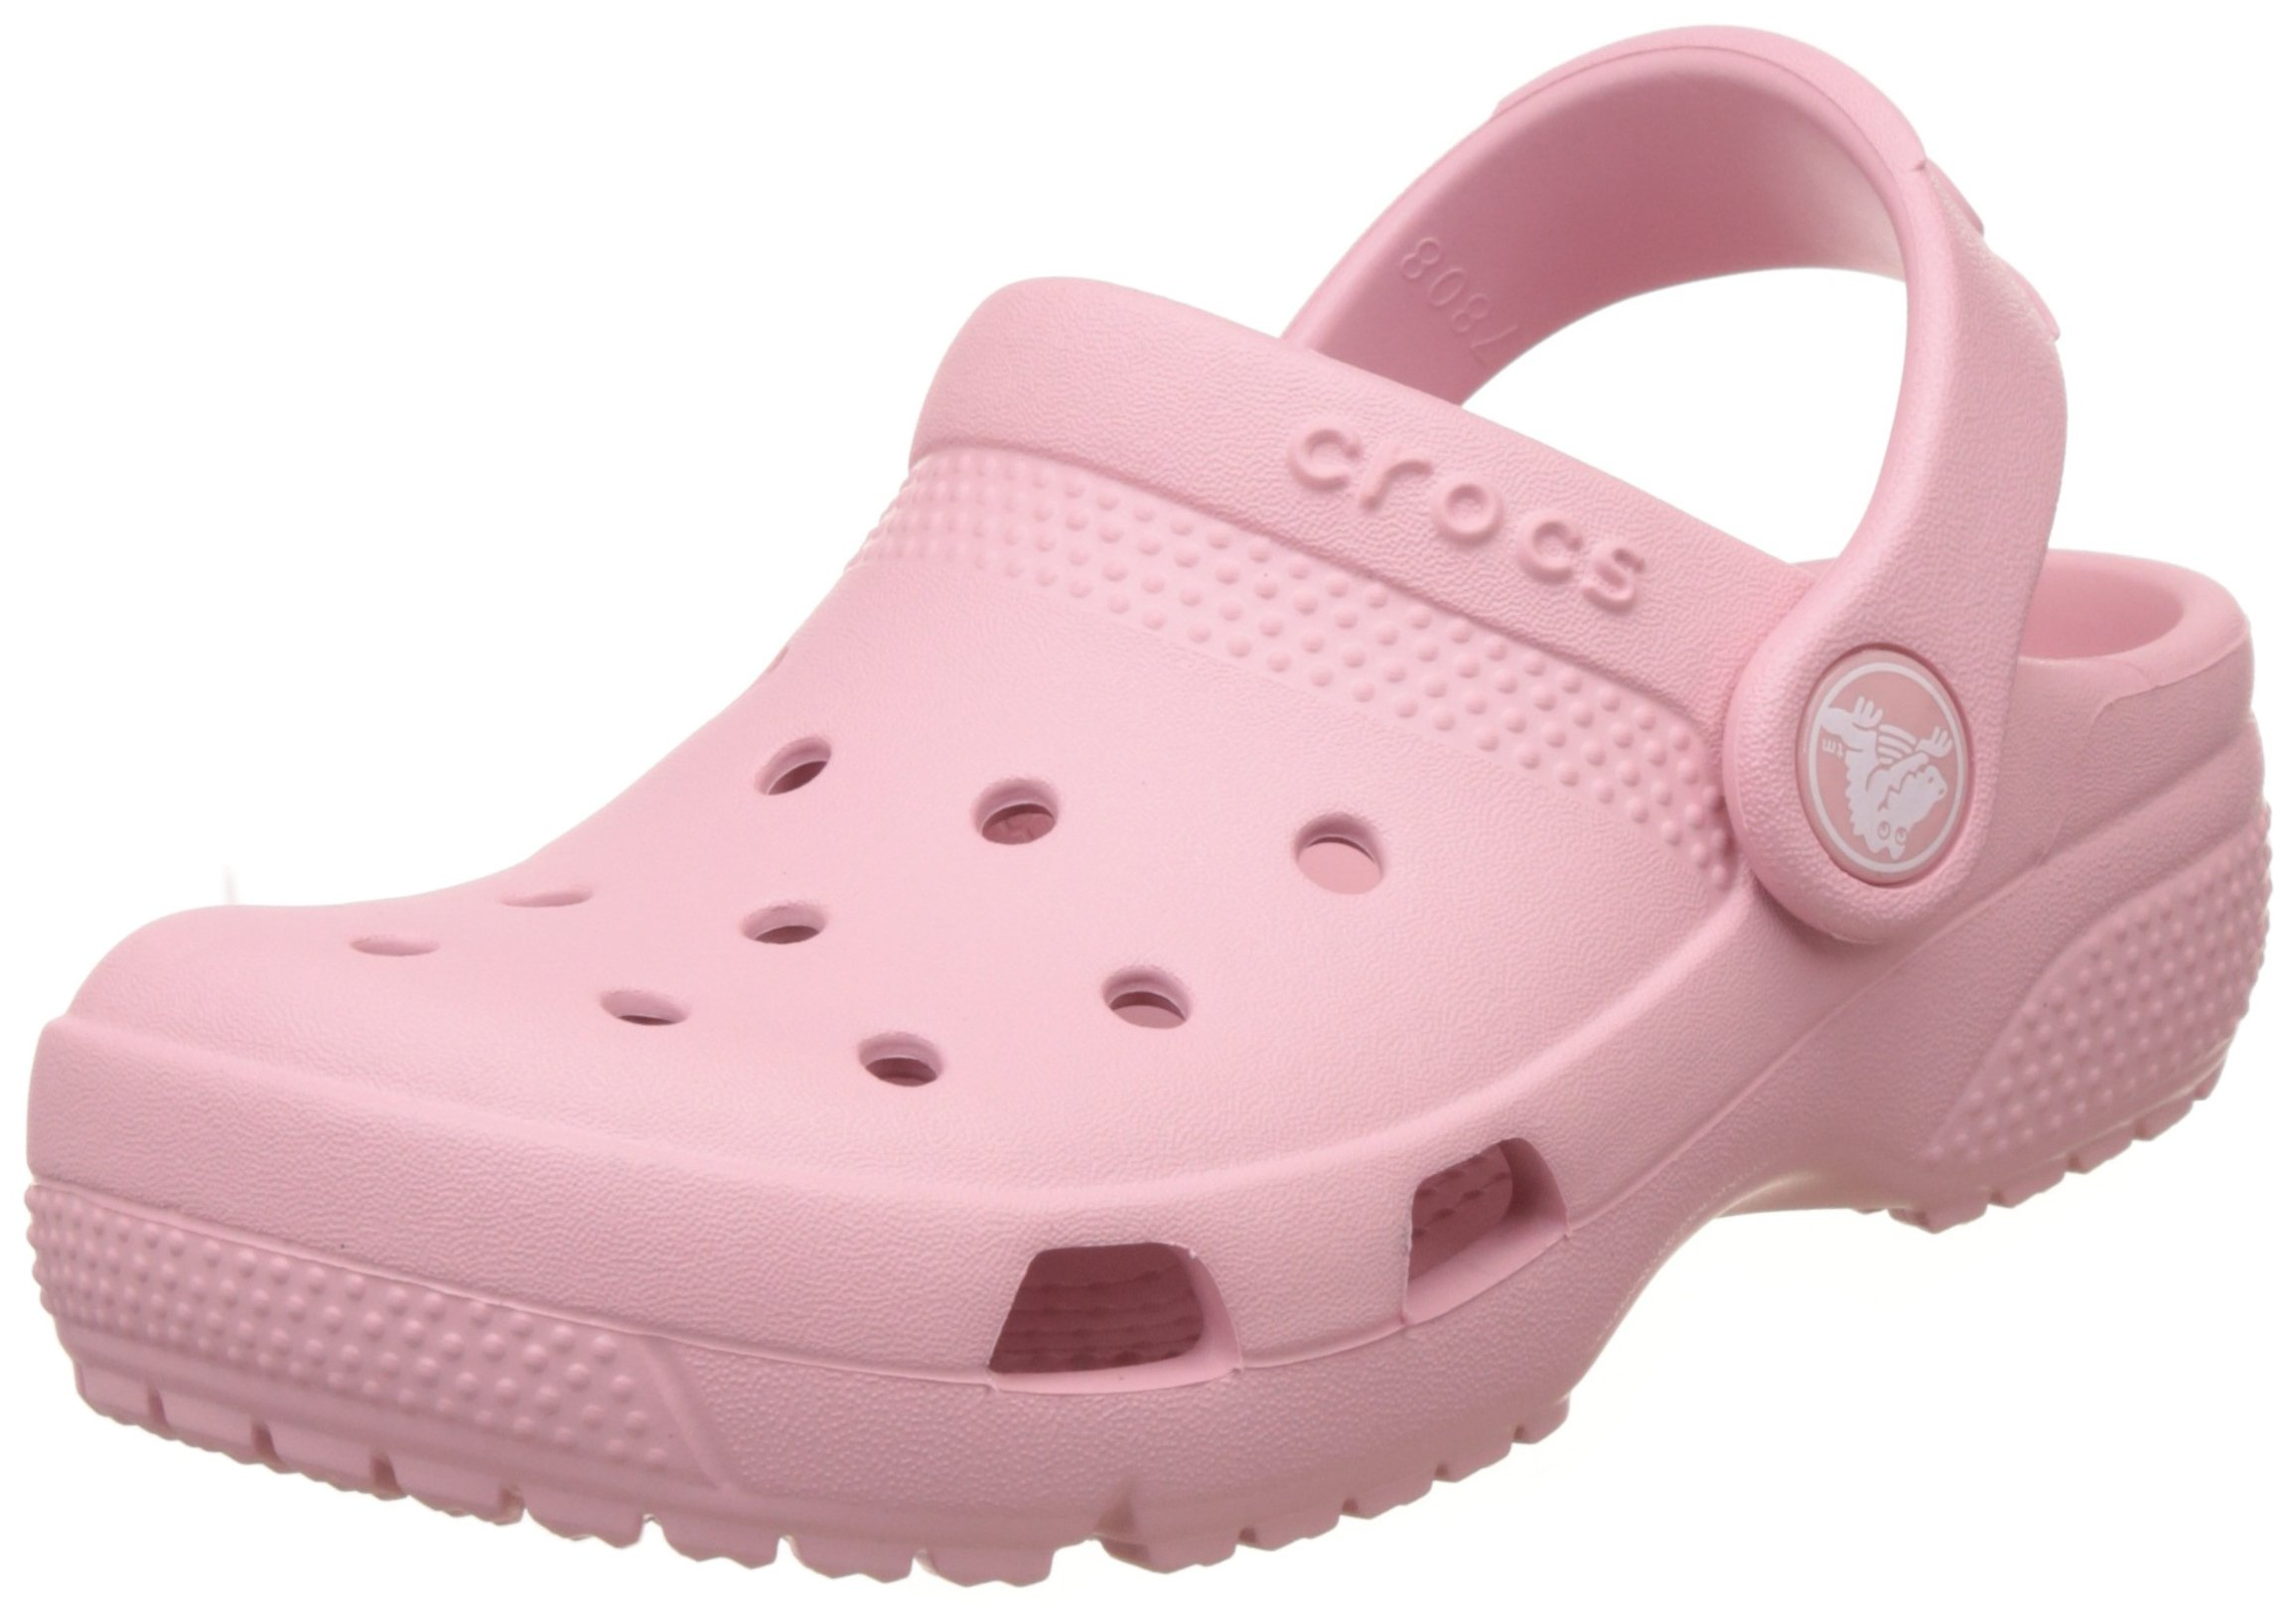 Crocs Kids Unisex Coast Clog (Toddler/Little Kid) Petal Pink 11 M US Little Kid by Crocs (Image #1)